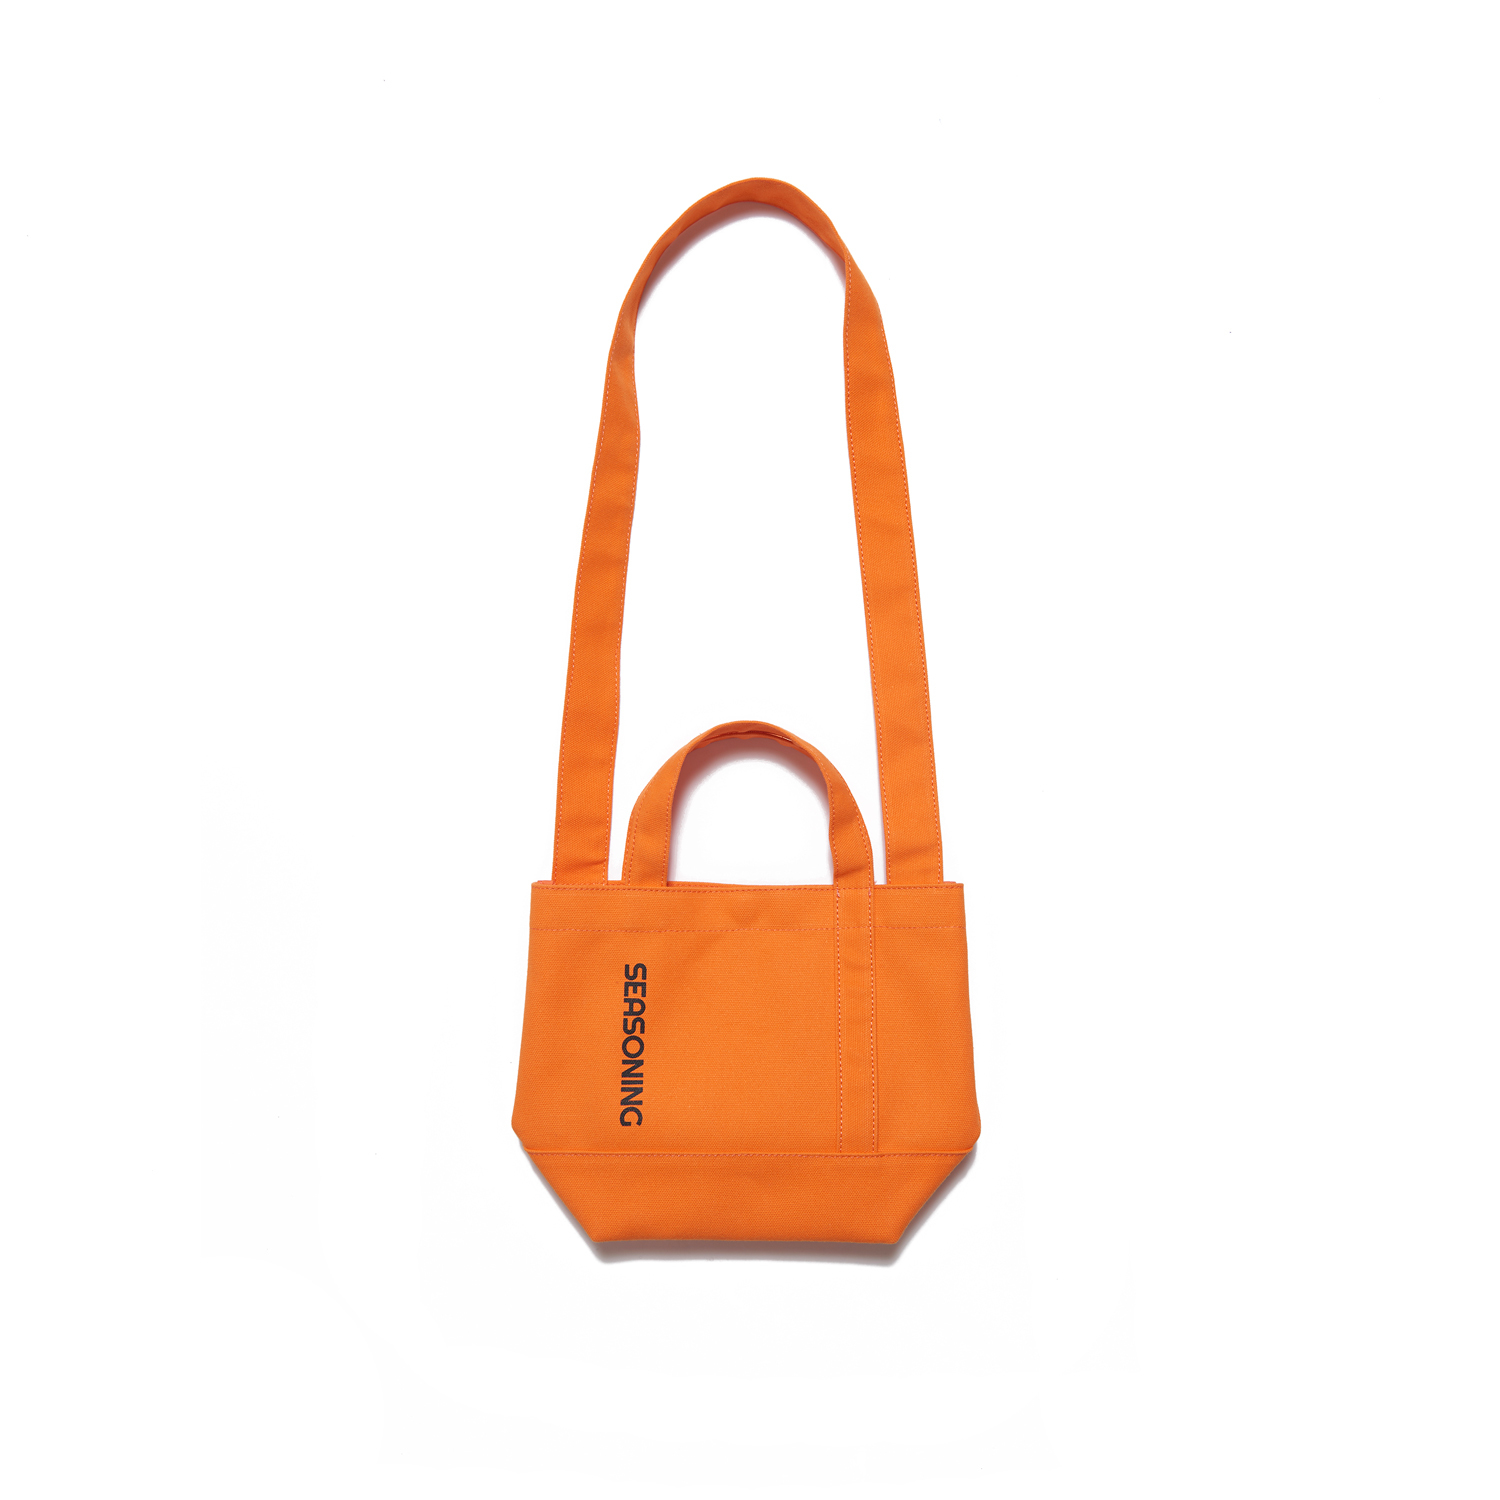 MINI TOTE BAG -  ORANGE